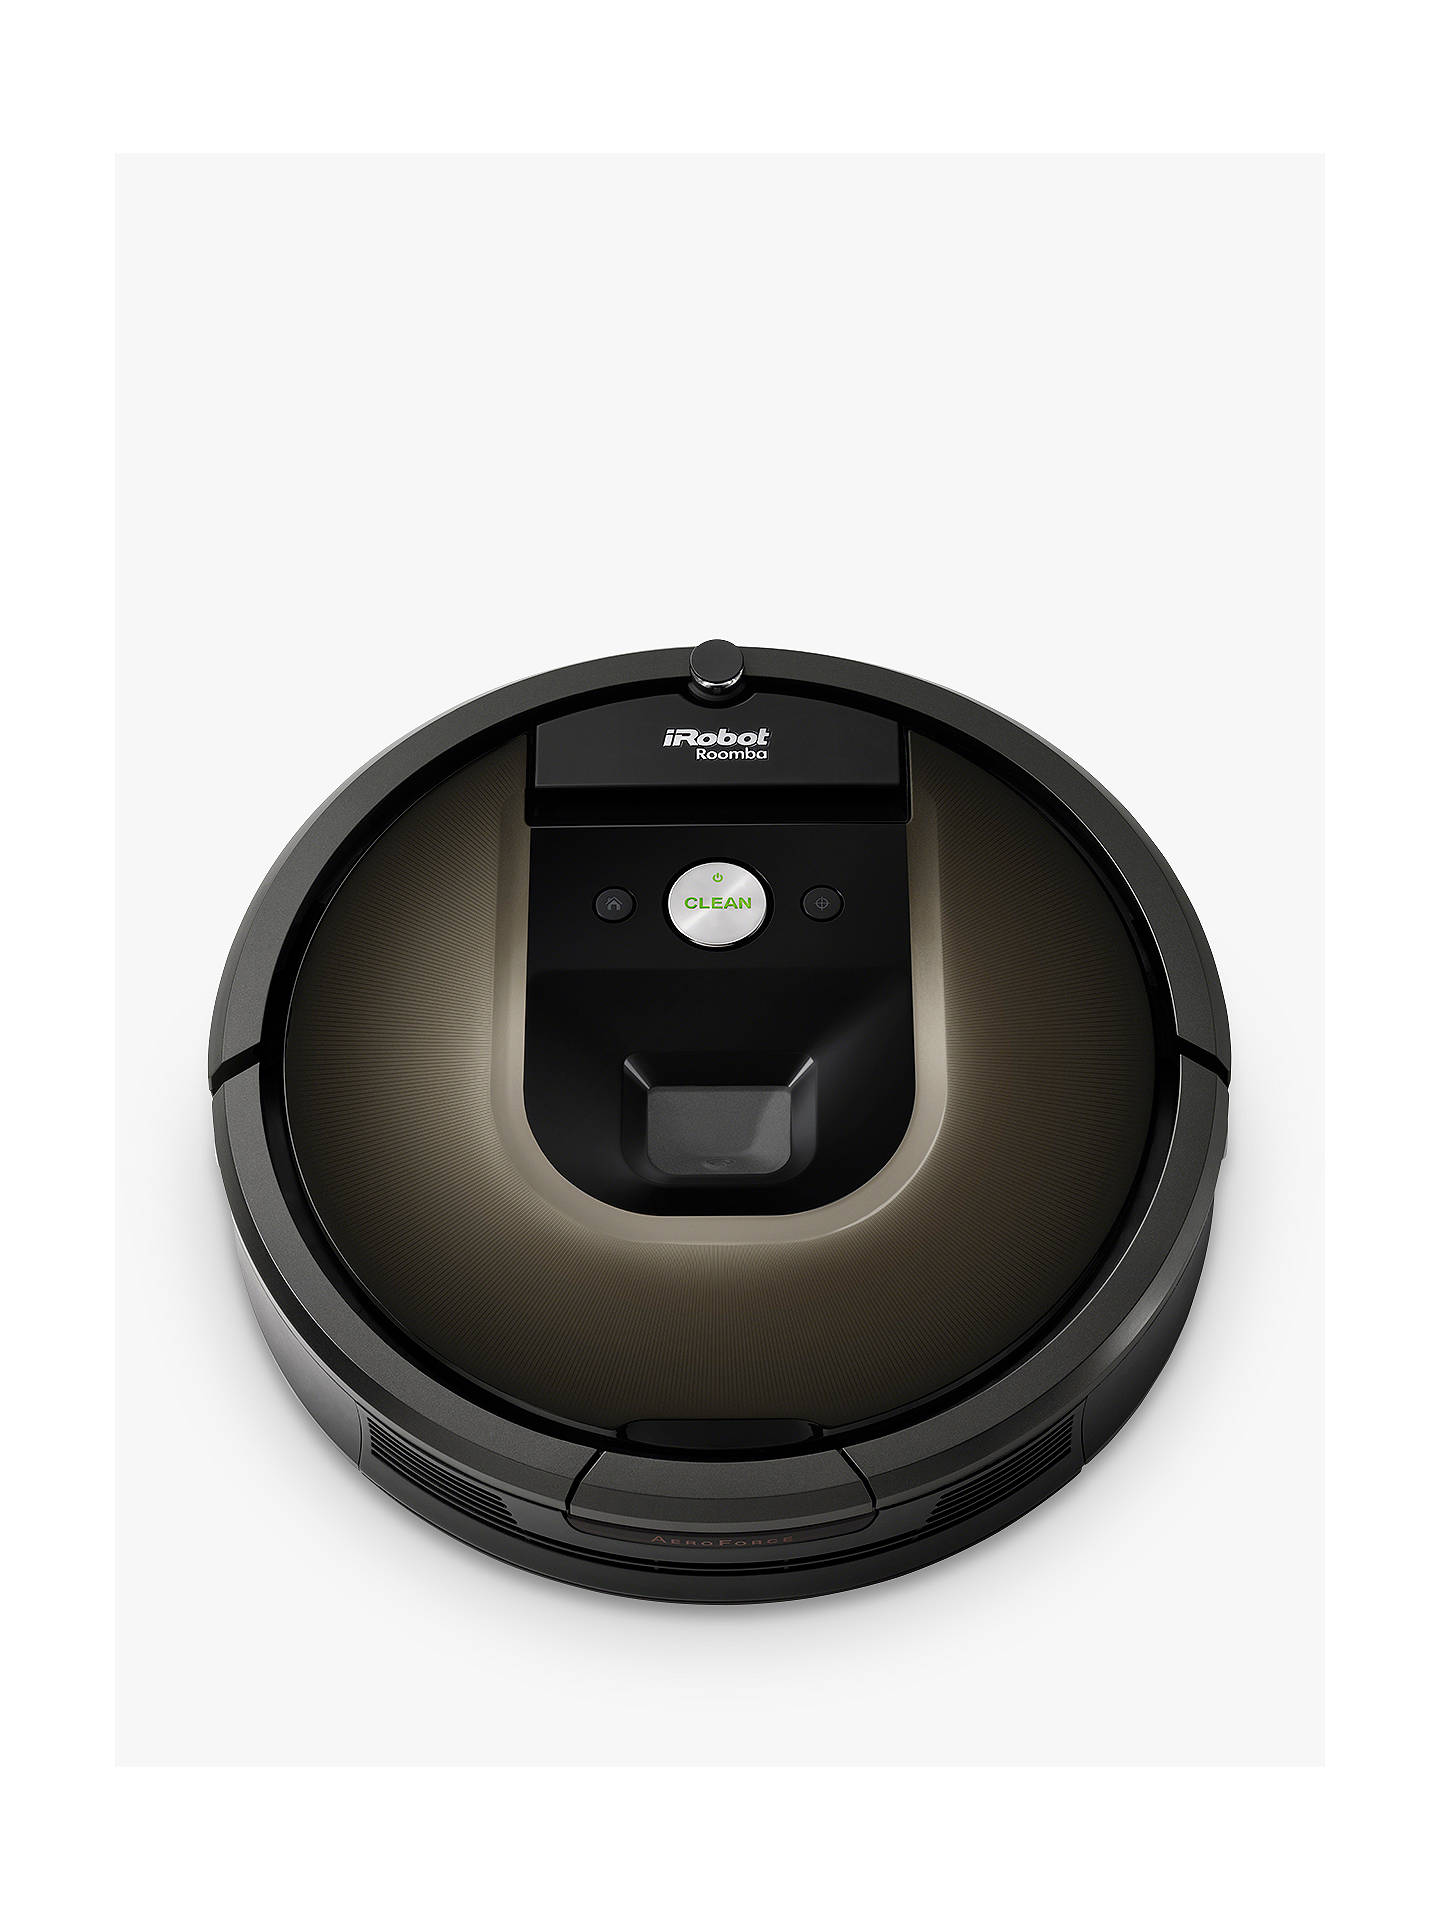 Buy iRobot Roomba 980 Robot Vacuum Cleaner, Black / Brown Online at johnlewis.com